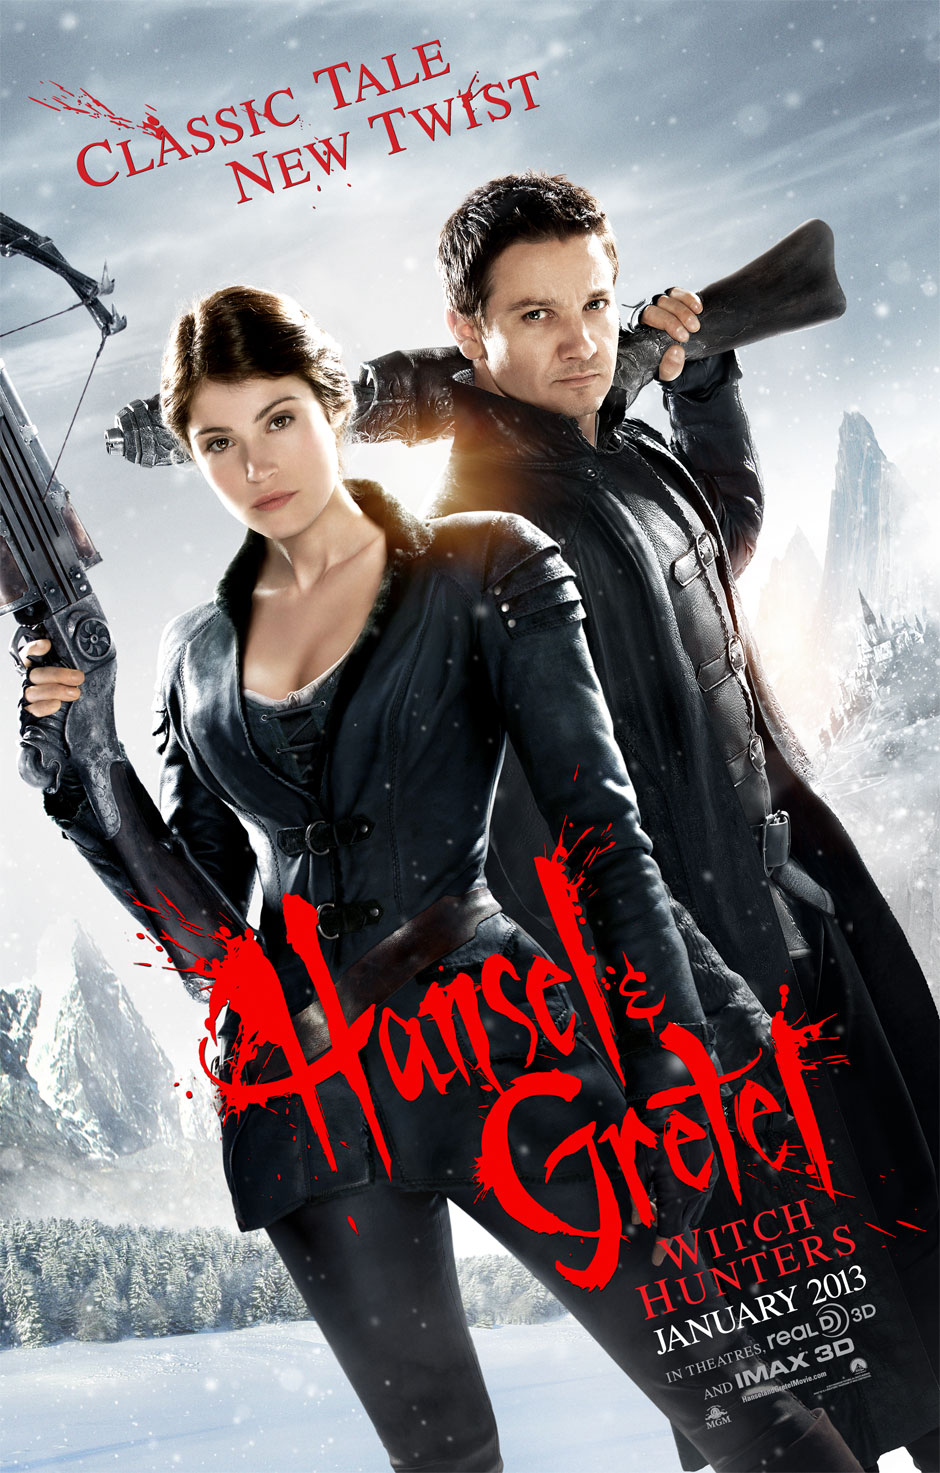 Hansel-and-Gretel-Witch-Hunters-2012-Movie-Poster.jpg